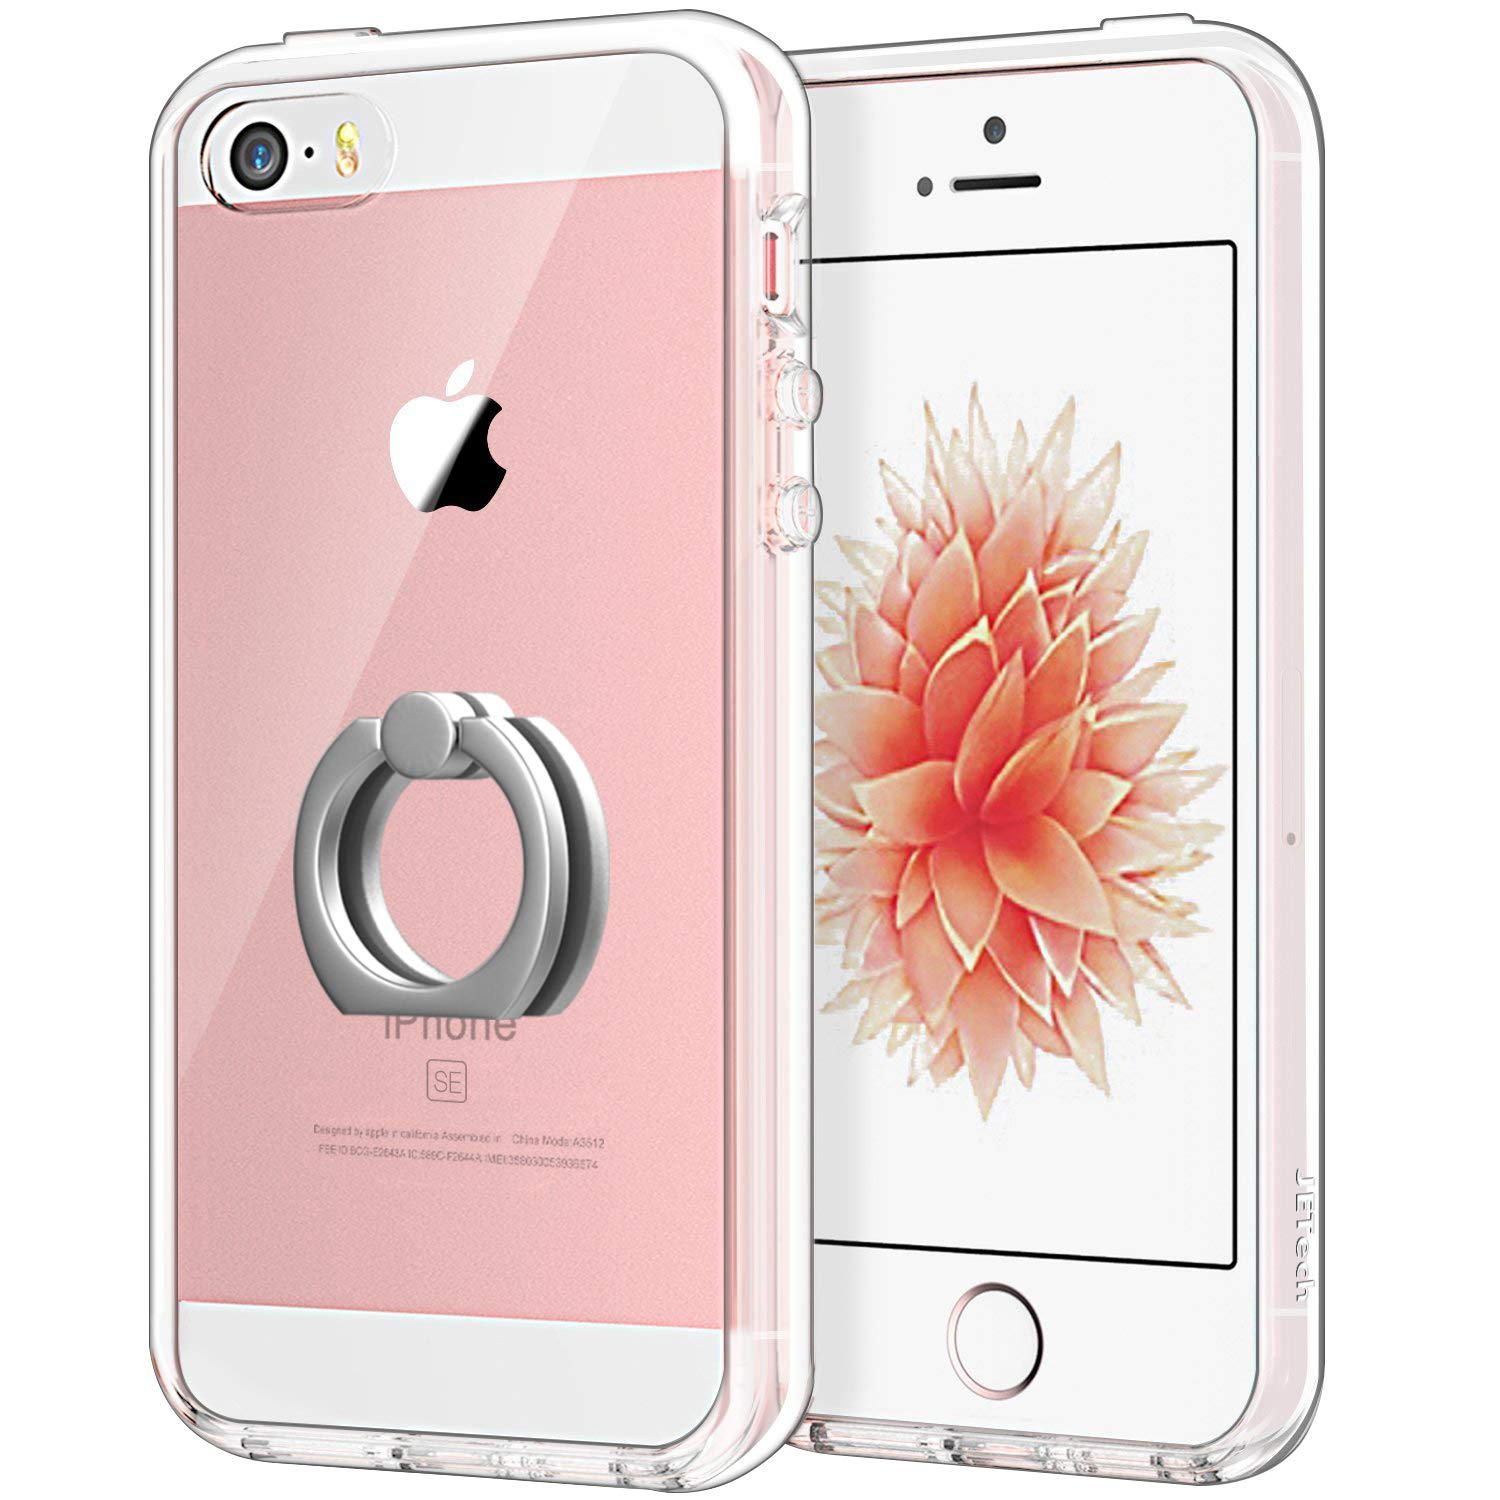 5ecf41eff9 Amazon.com: JETech Case for Apple iPhone SE, iPhone 5s and iPhone 5, Ring  Holder Kickstand, Shock-Absorption Bumper Cover, HD Clear: Cell Phones & ...